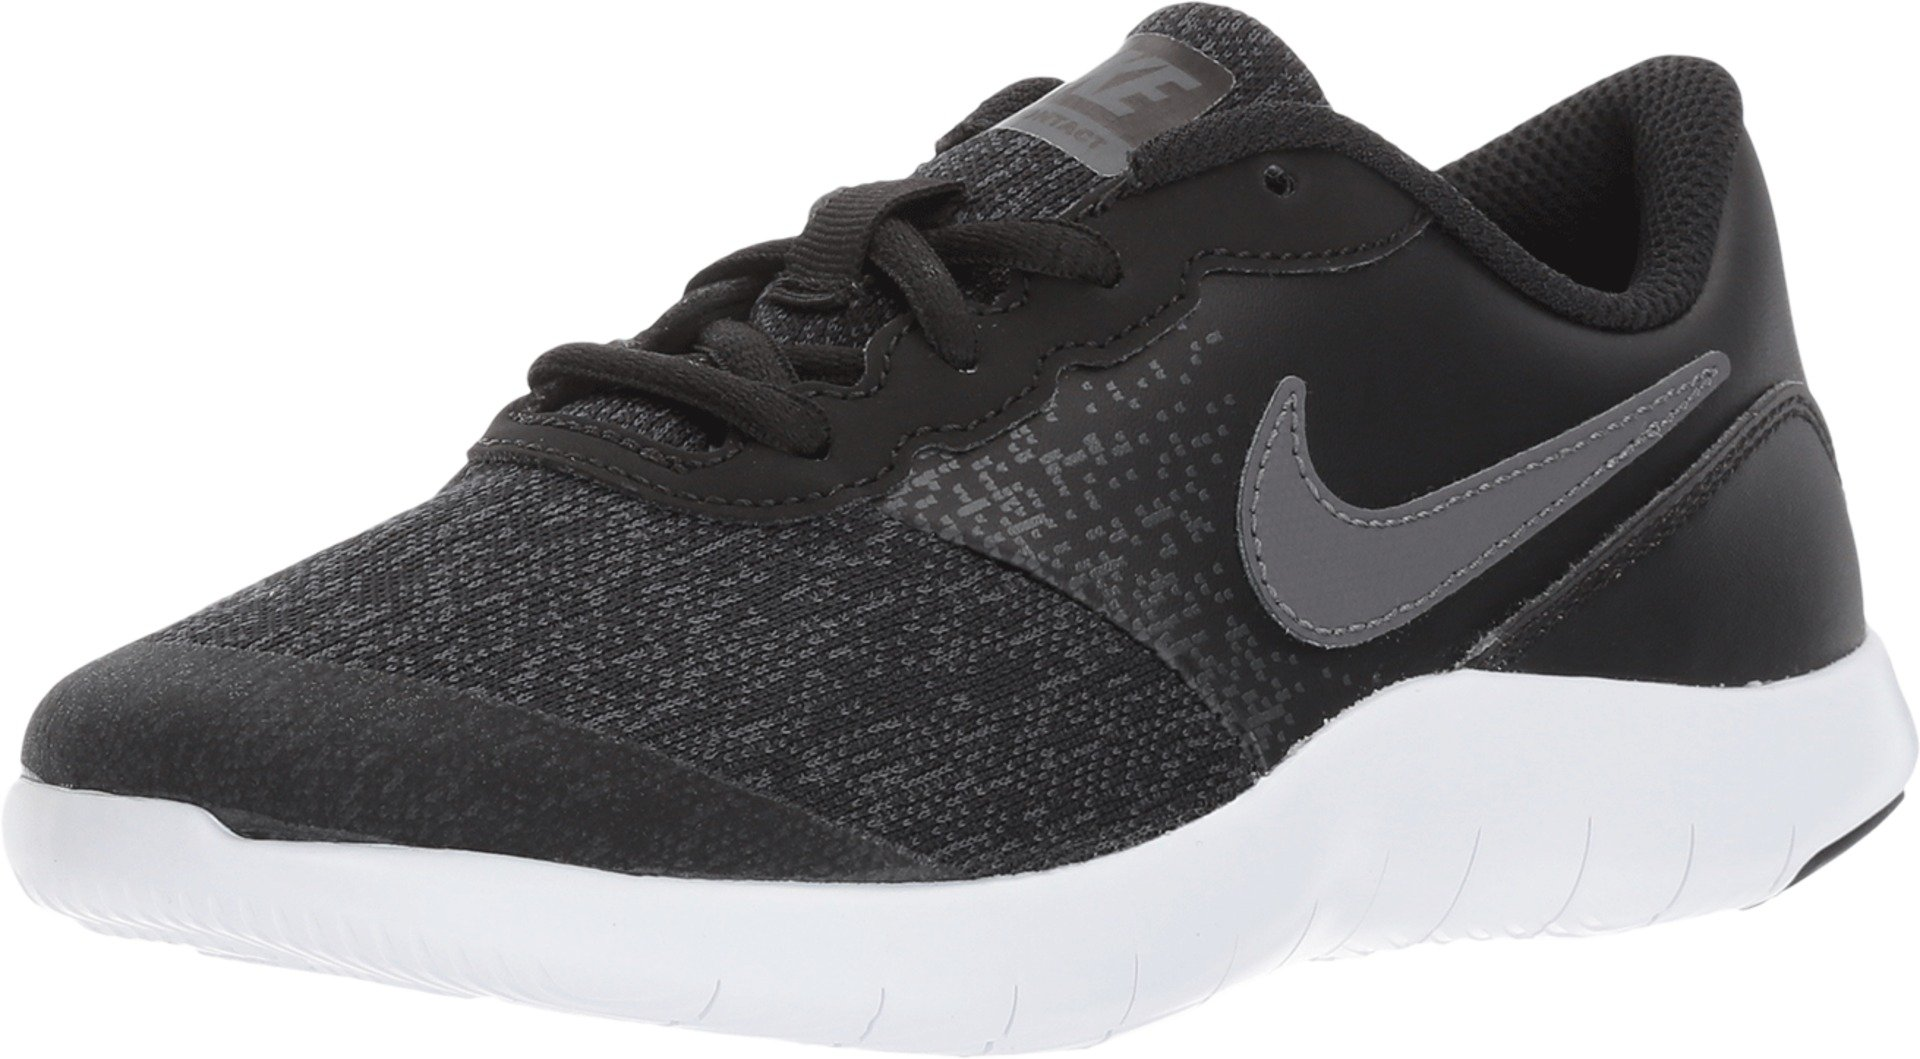 Nike Kids Flex Contact (PS) Black DRK Gry Anthracite White Size 2.5